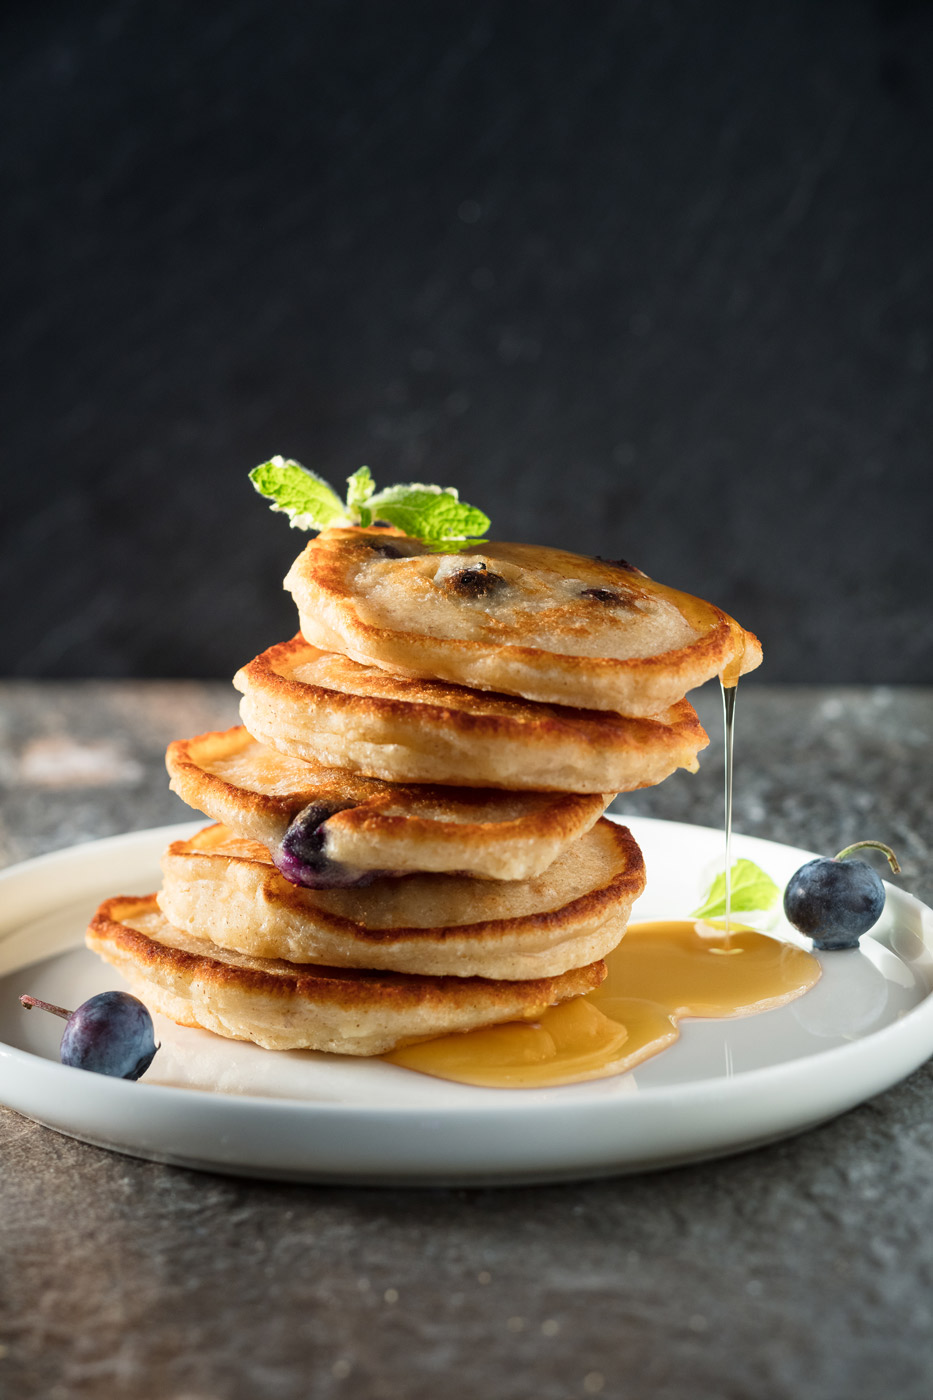 Recipe image of pancakes with maple sirup